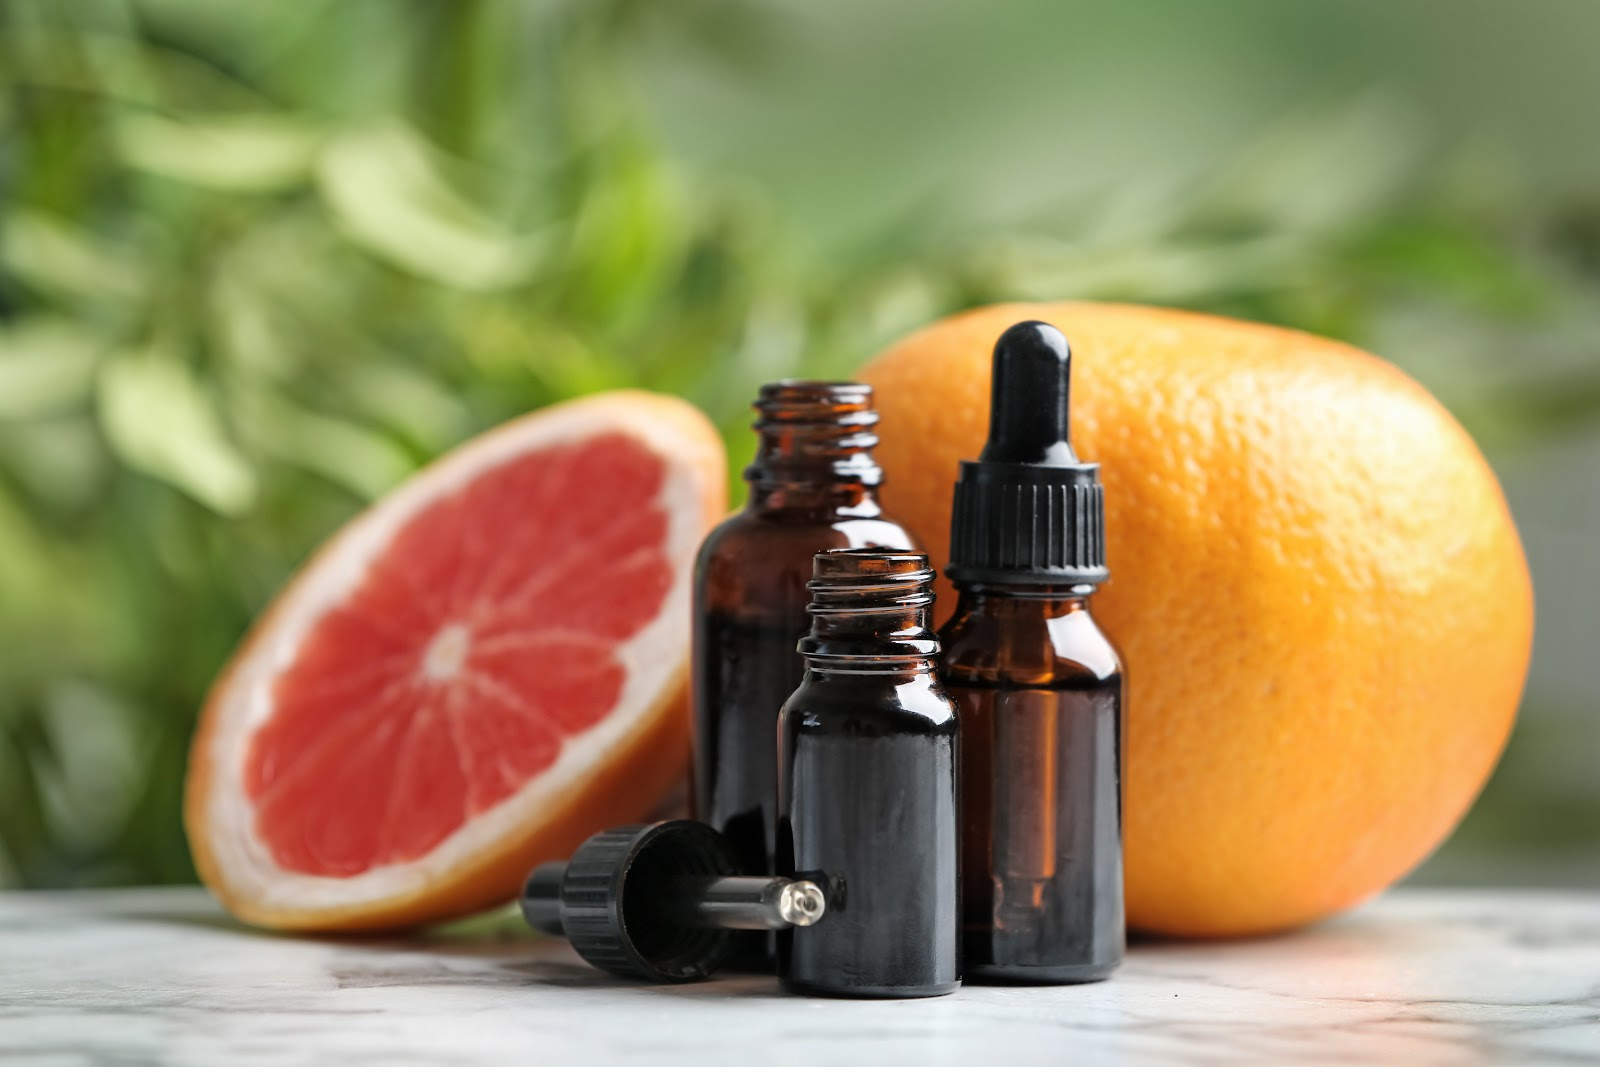 Essential oils for mind and body